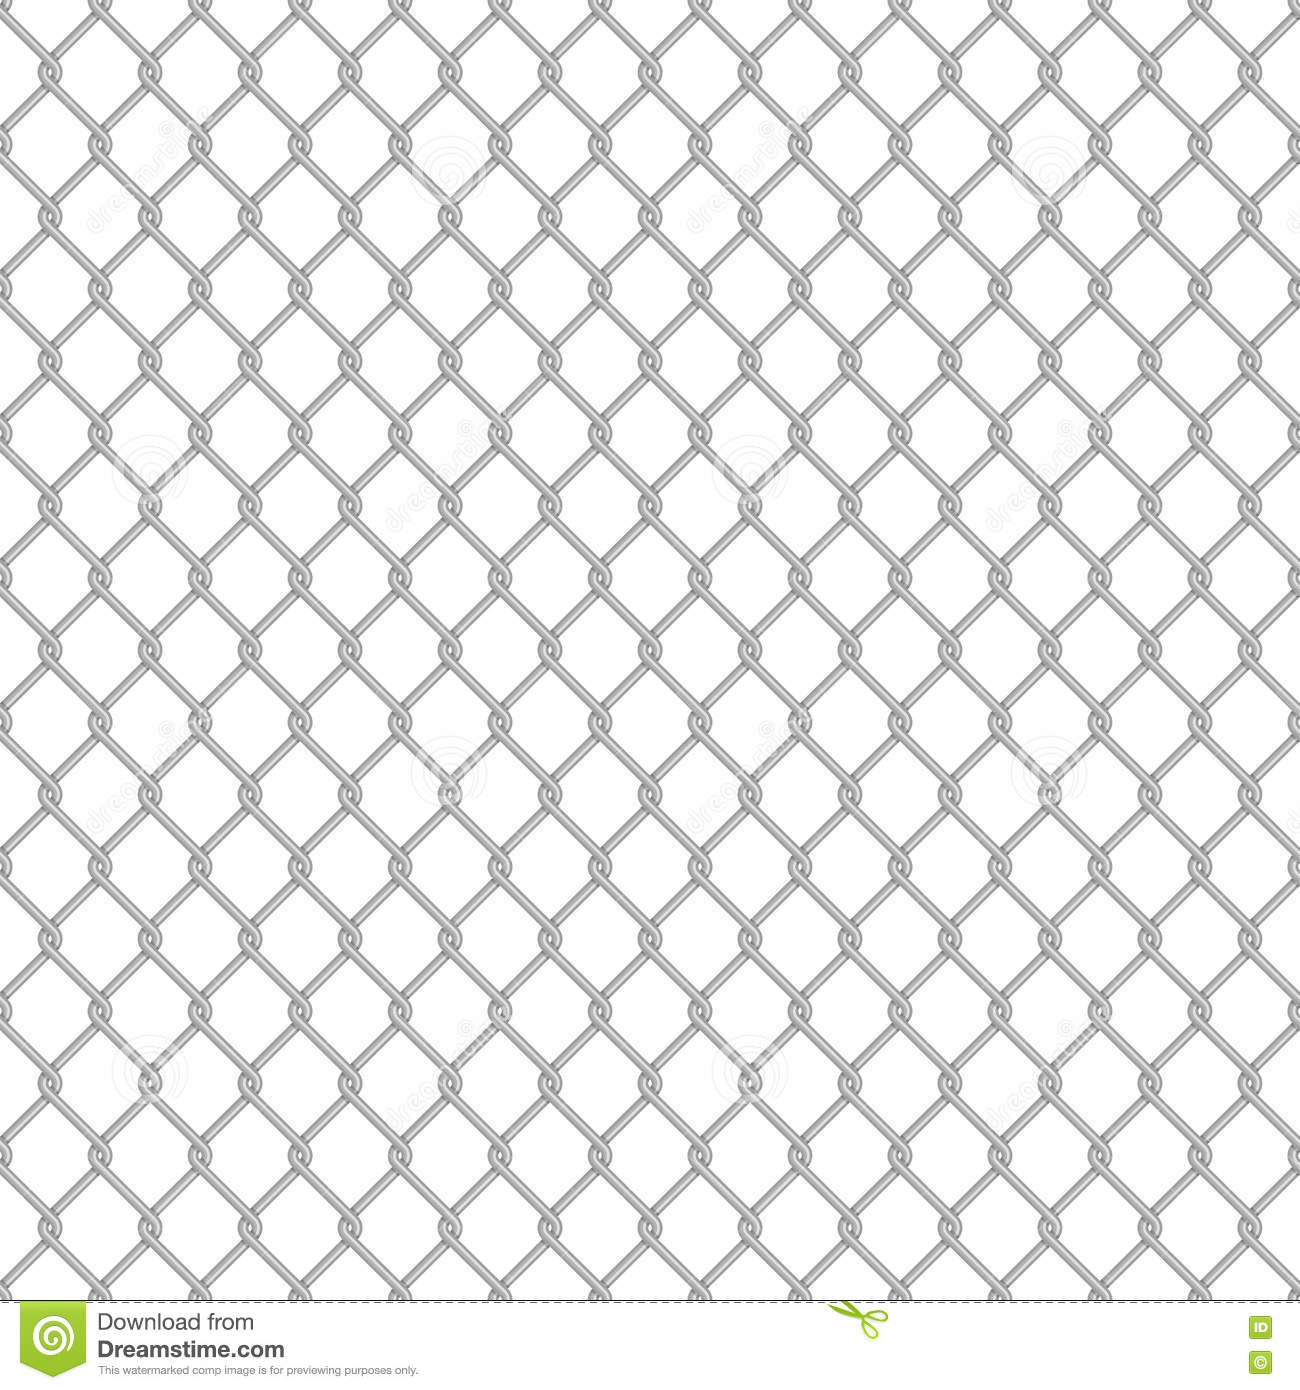 Chainlink Fence Seamless Stock Image